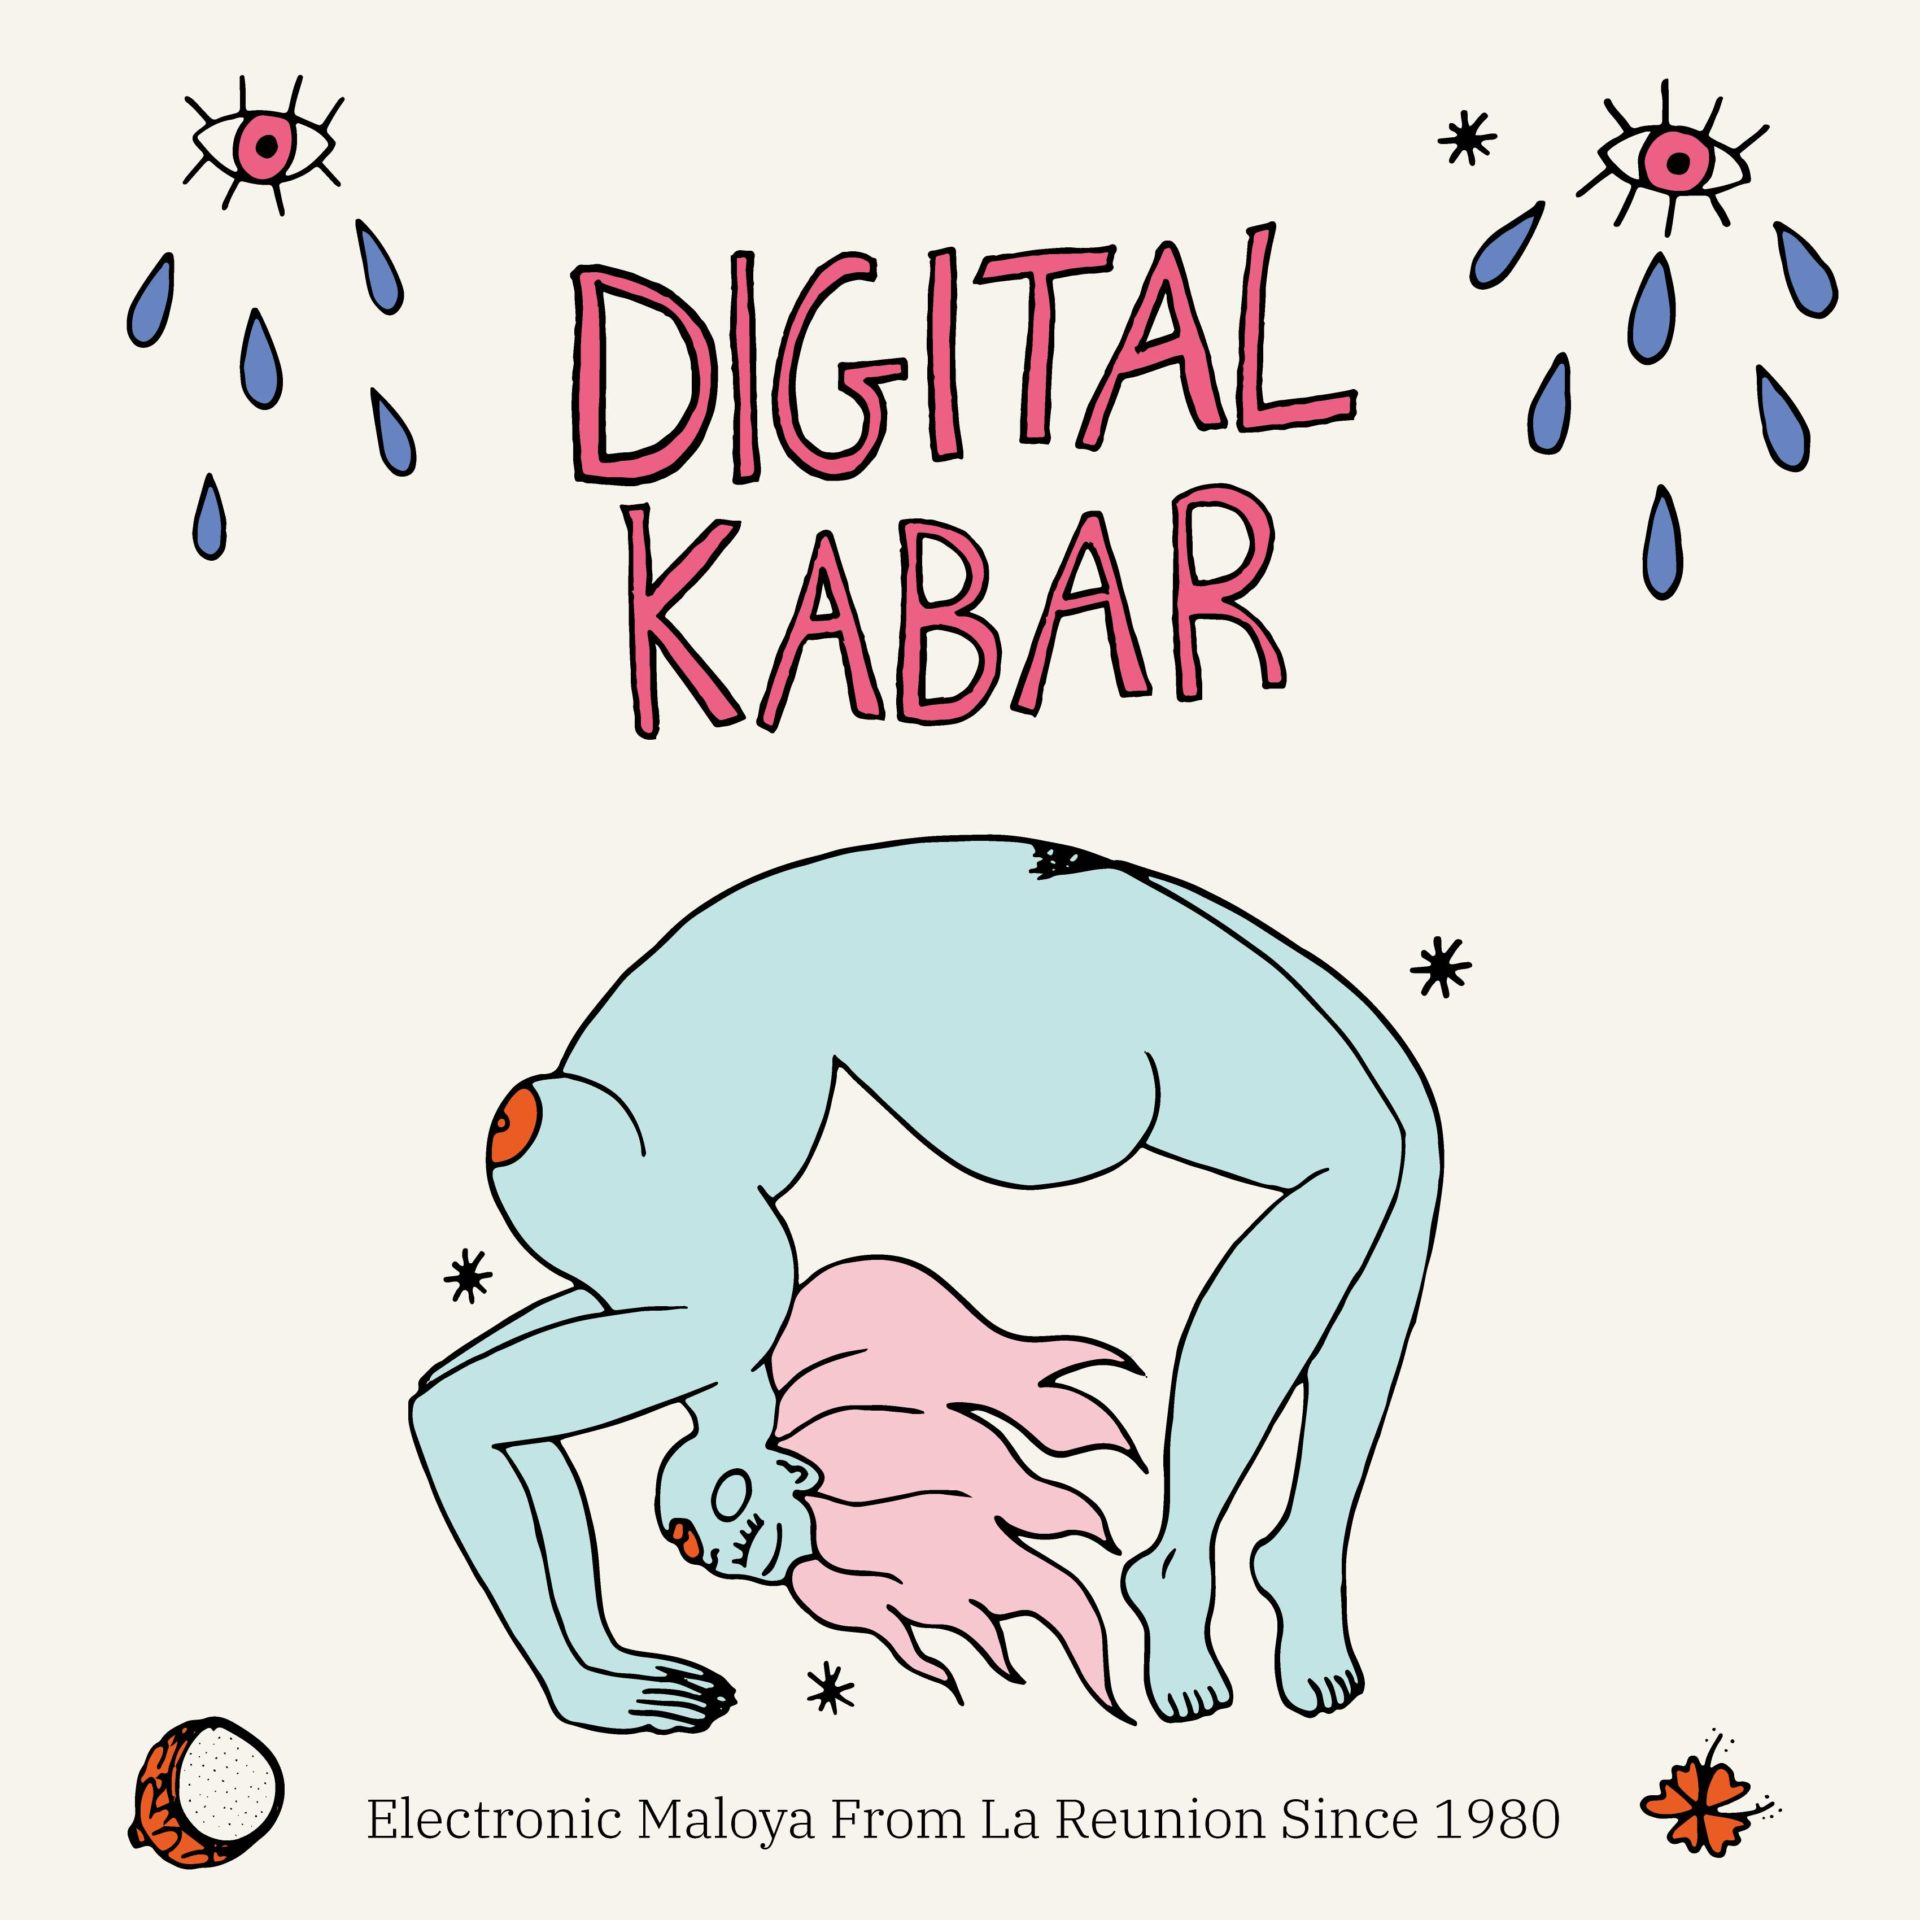 Digital Kabar, Electronic Maloya from La Reunion since 1980 (InFiné)